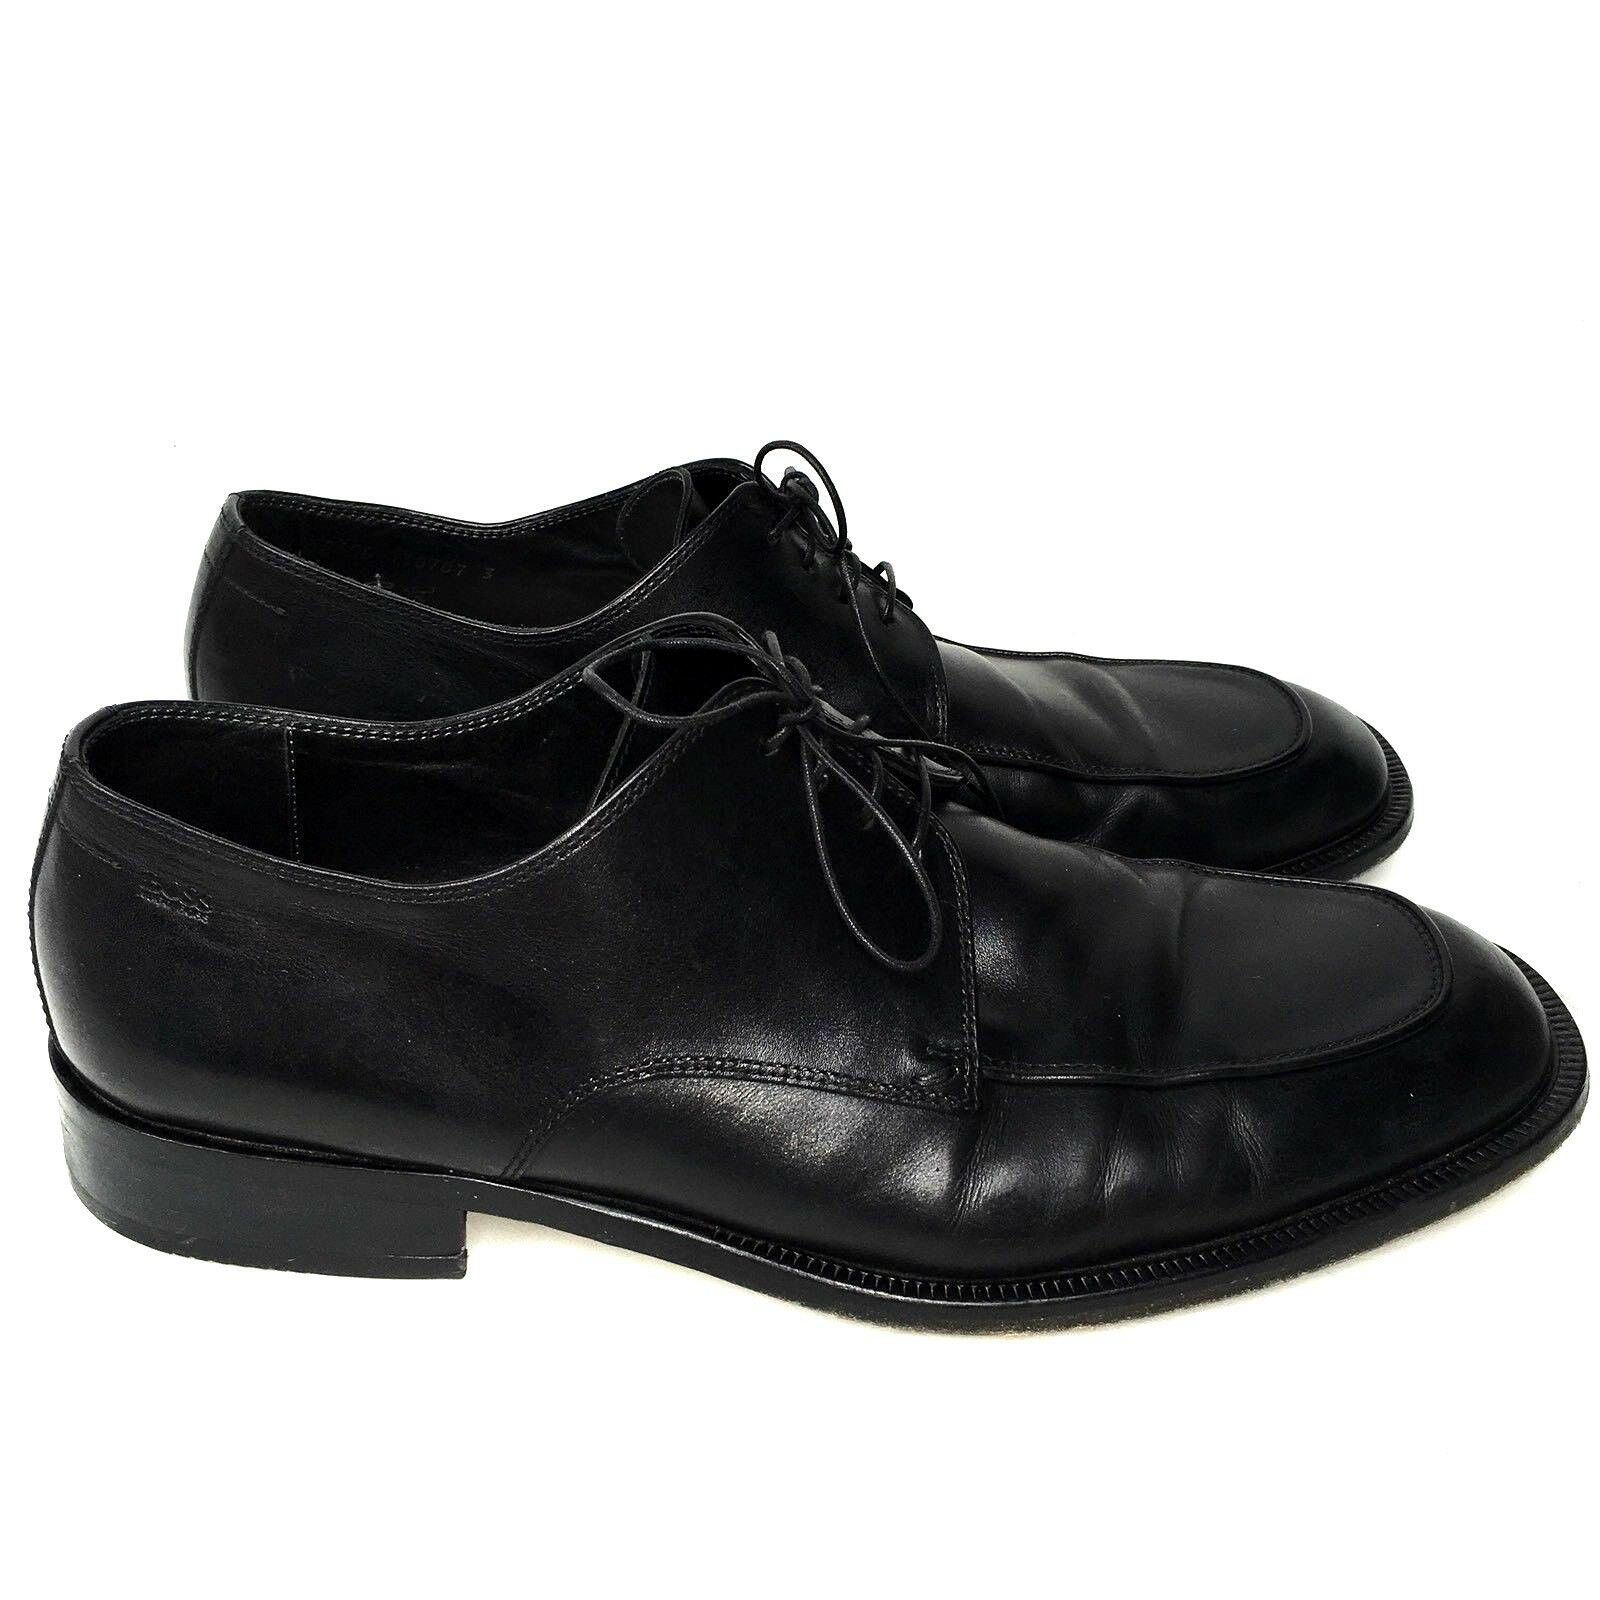 HUGO BOSS Nero Pelle Lace-Up Dress in Shoes Uomo Sz 12 Made in Dress Italy READ d1b682